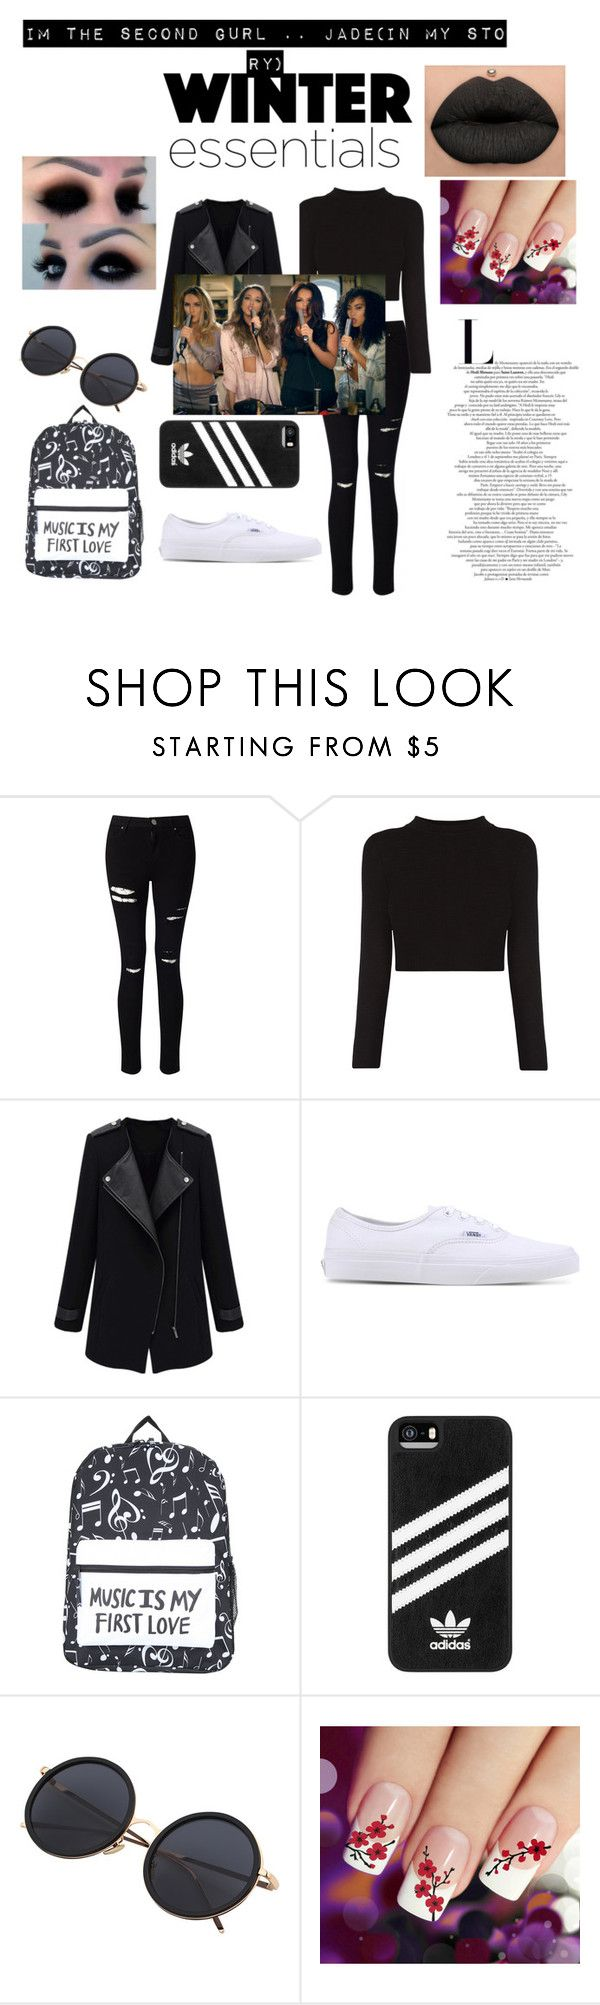 """Perrie, Jade, Jesy, & Leigh-Anne."" by emo-presley ❤ liked on Polyvore featuring Miss Selfridge, Vans and adidas"